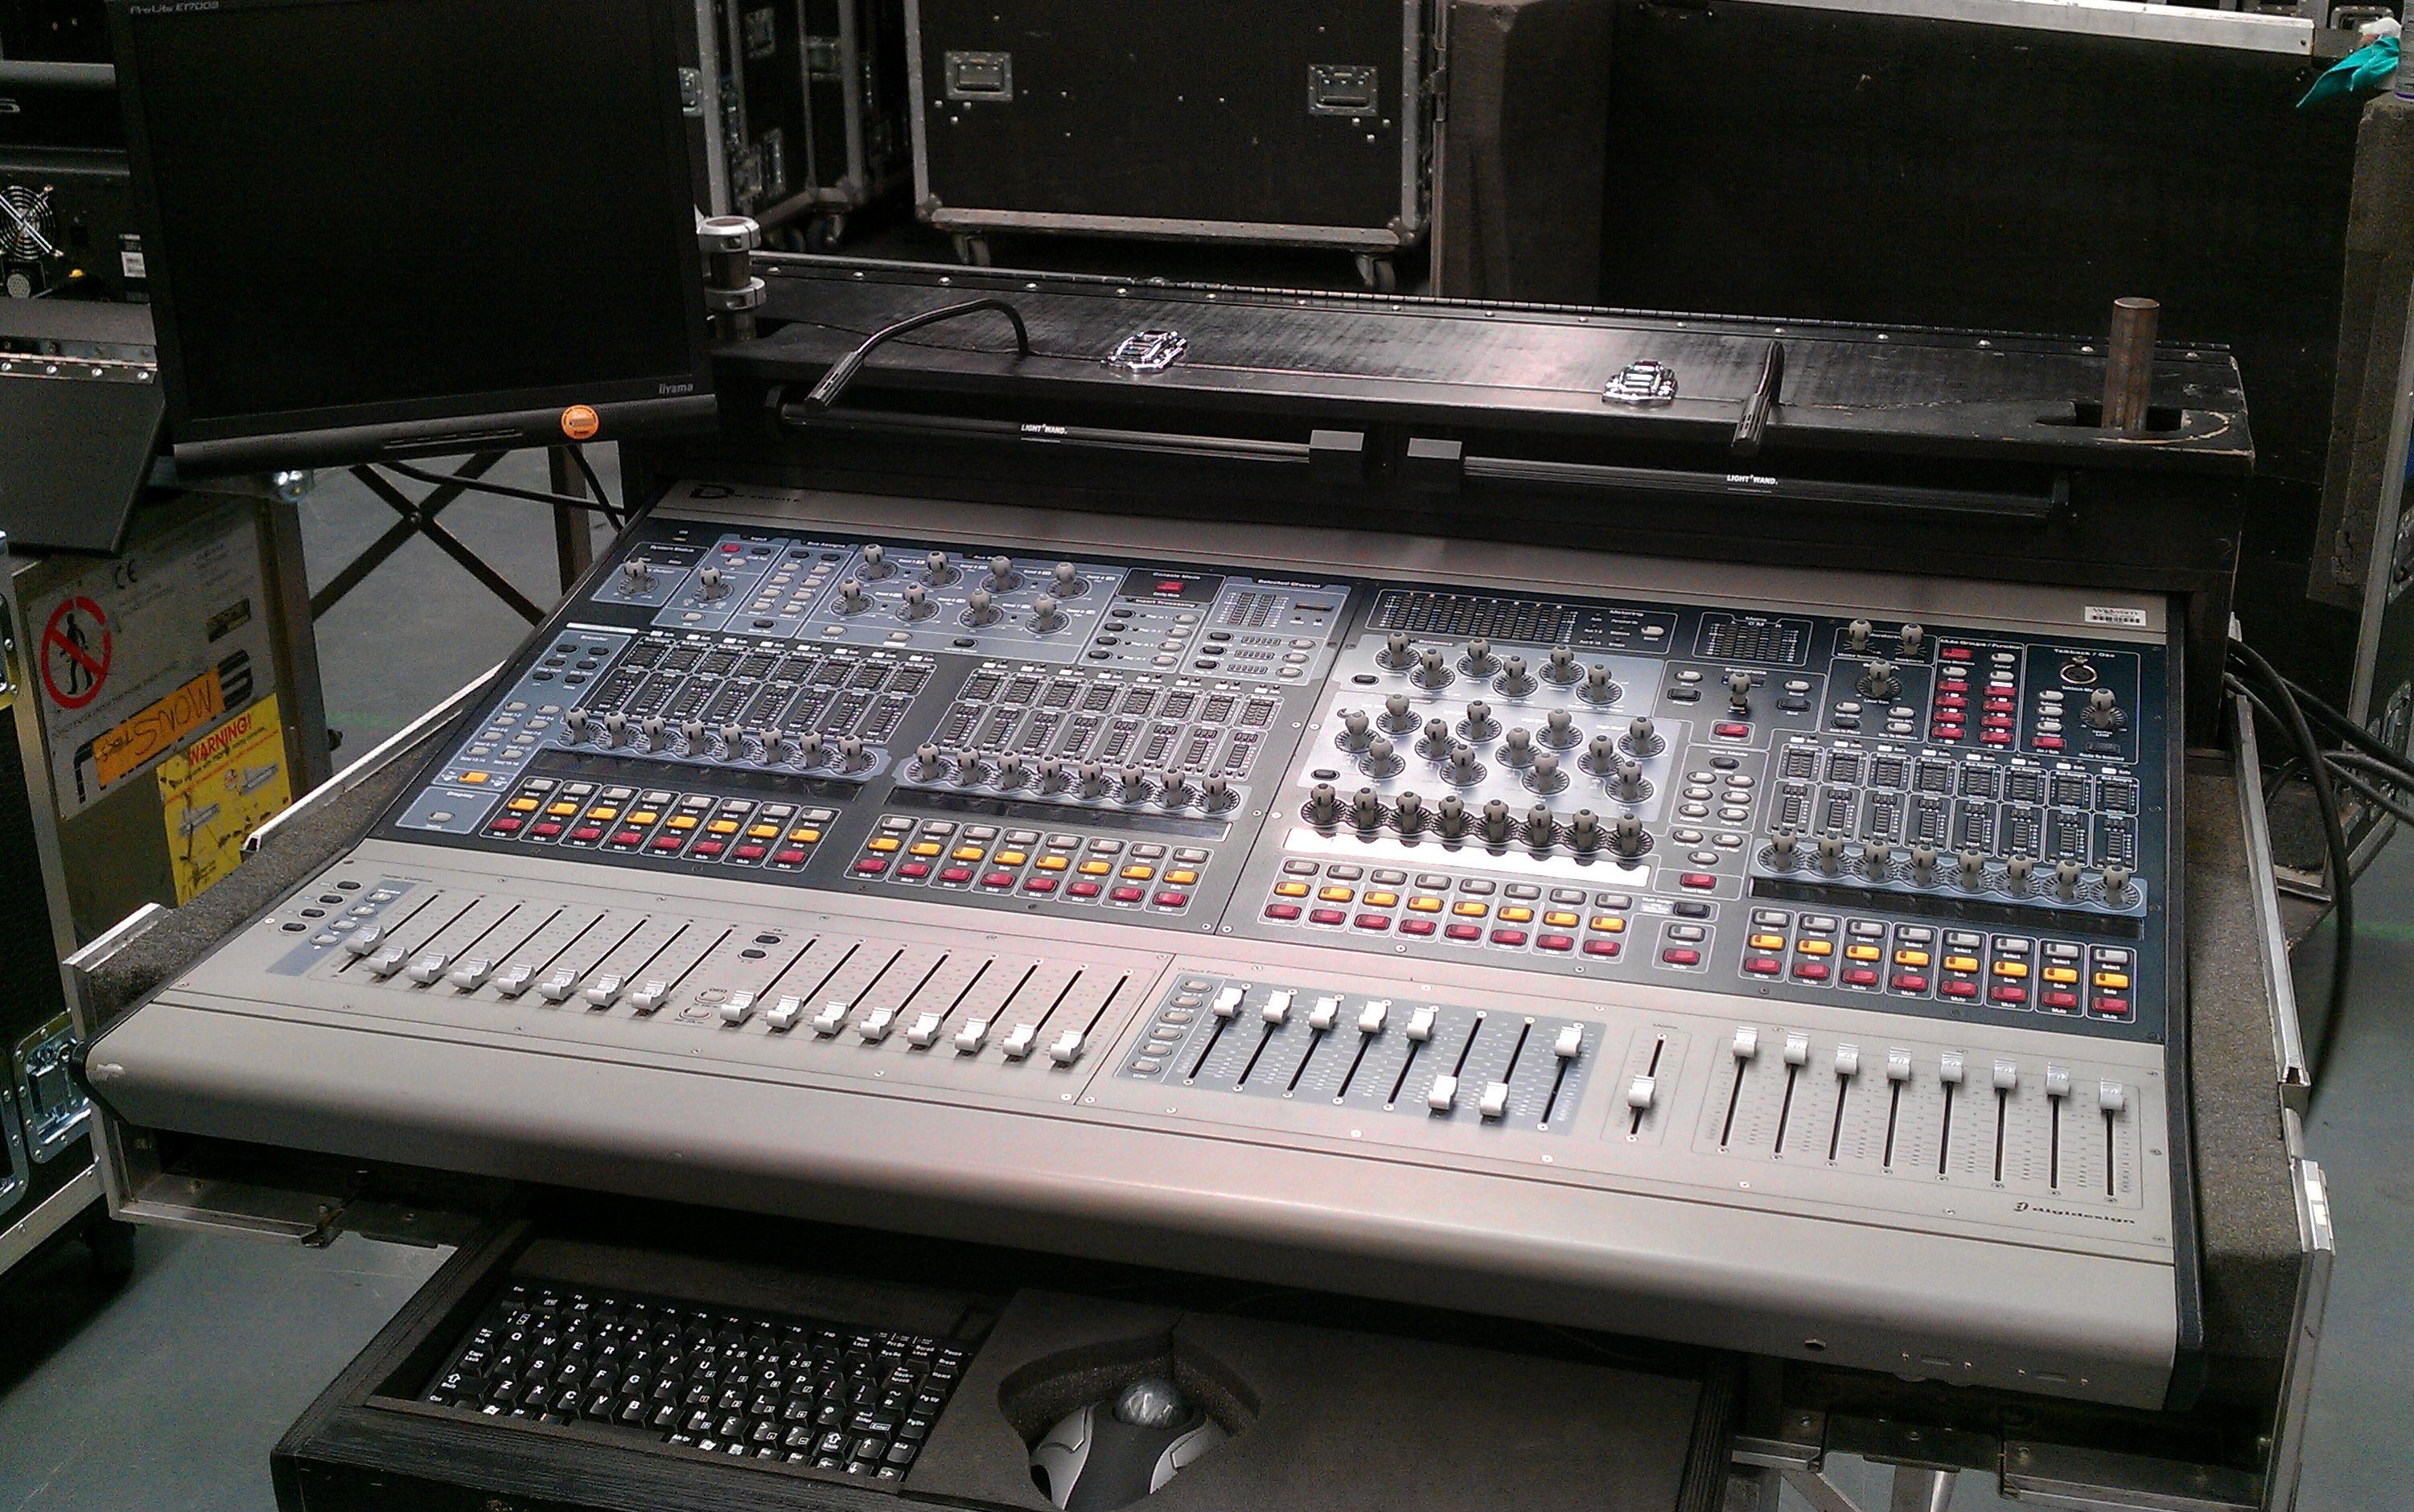 Digidesign  Avid Venue Systems  Profile SC48 and more  SHS Global Specials